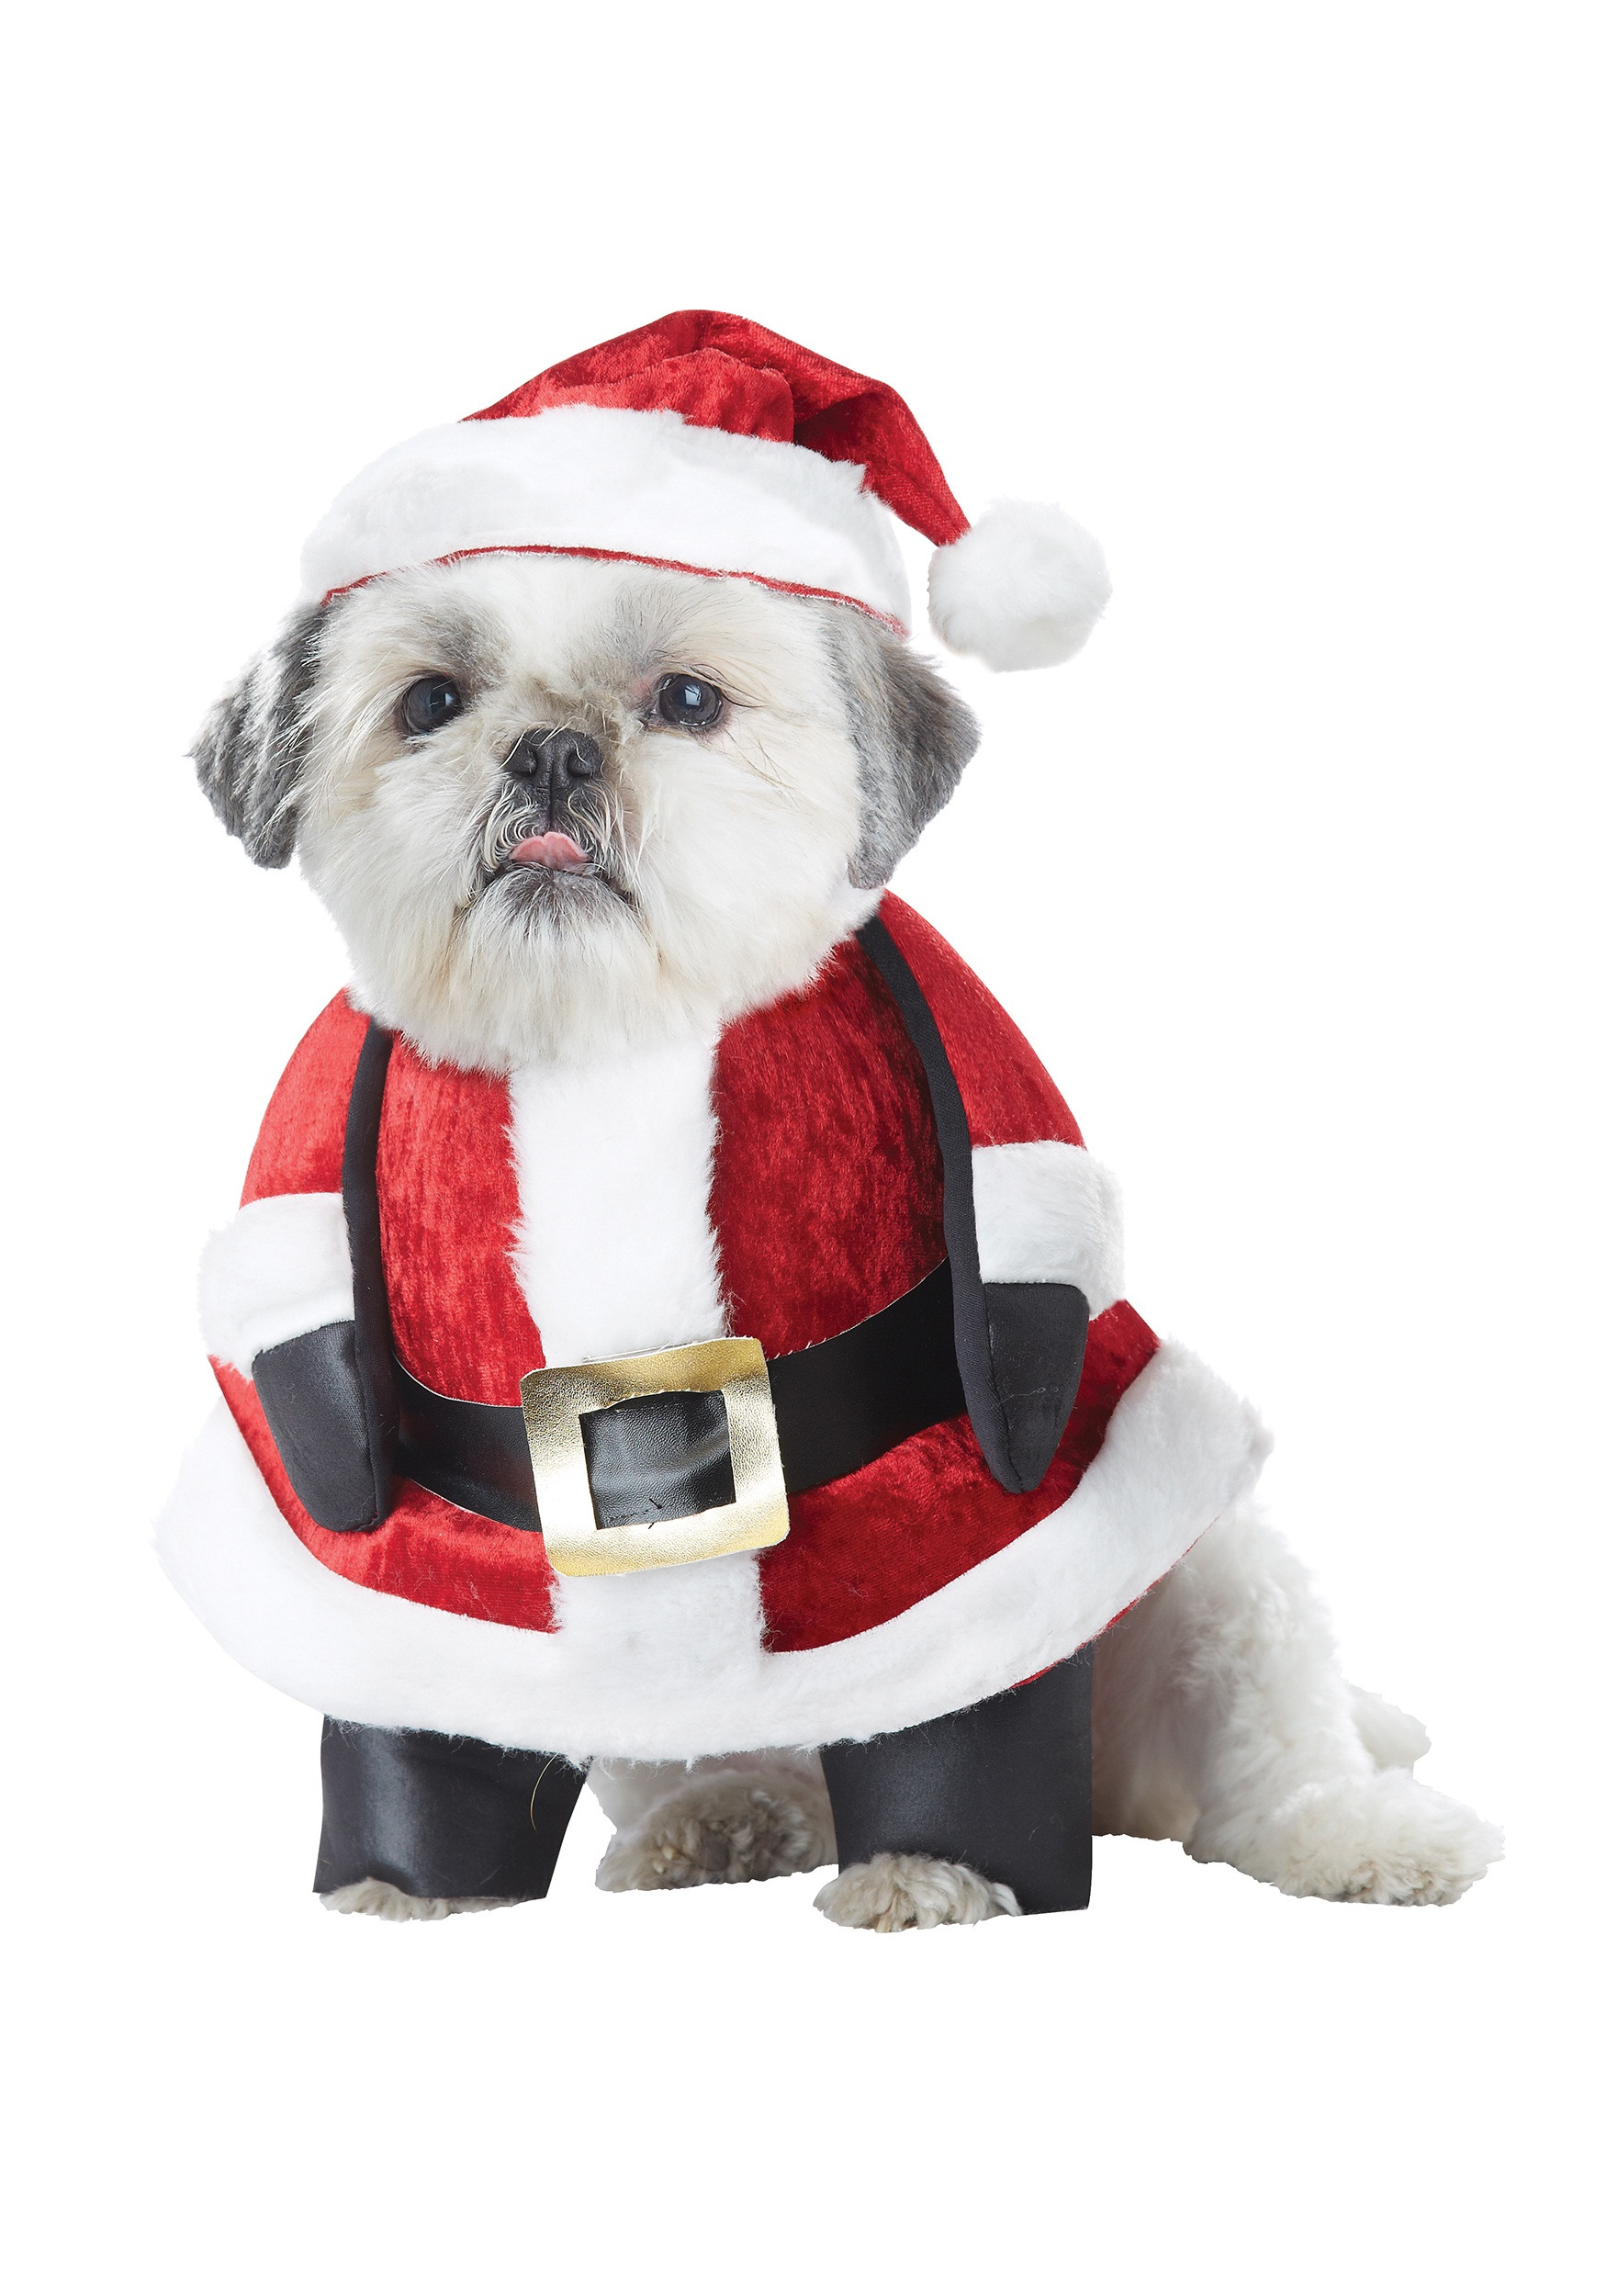 Dog Santa Suit photo - 2